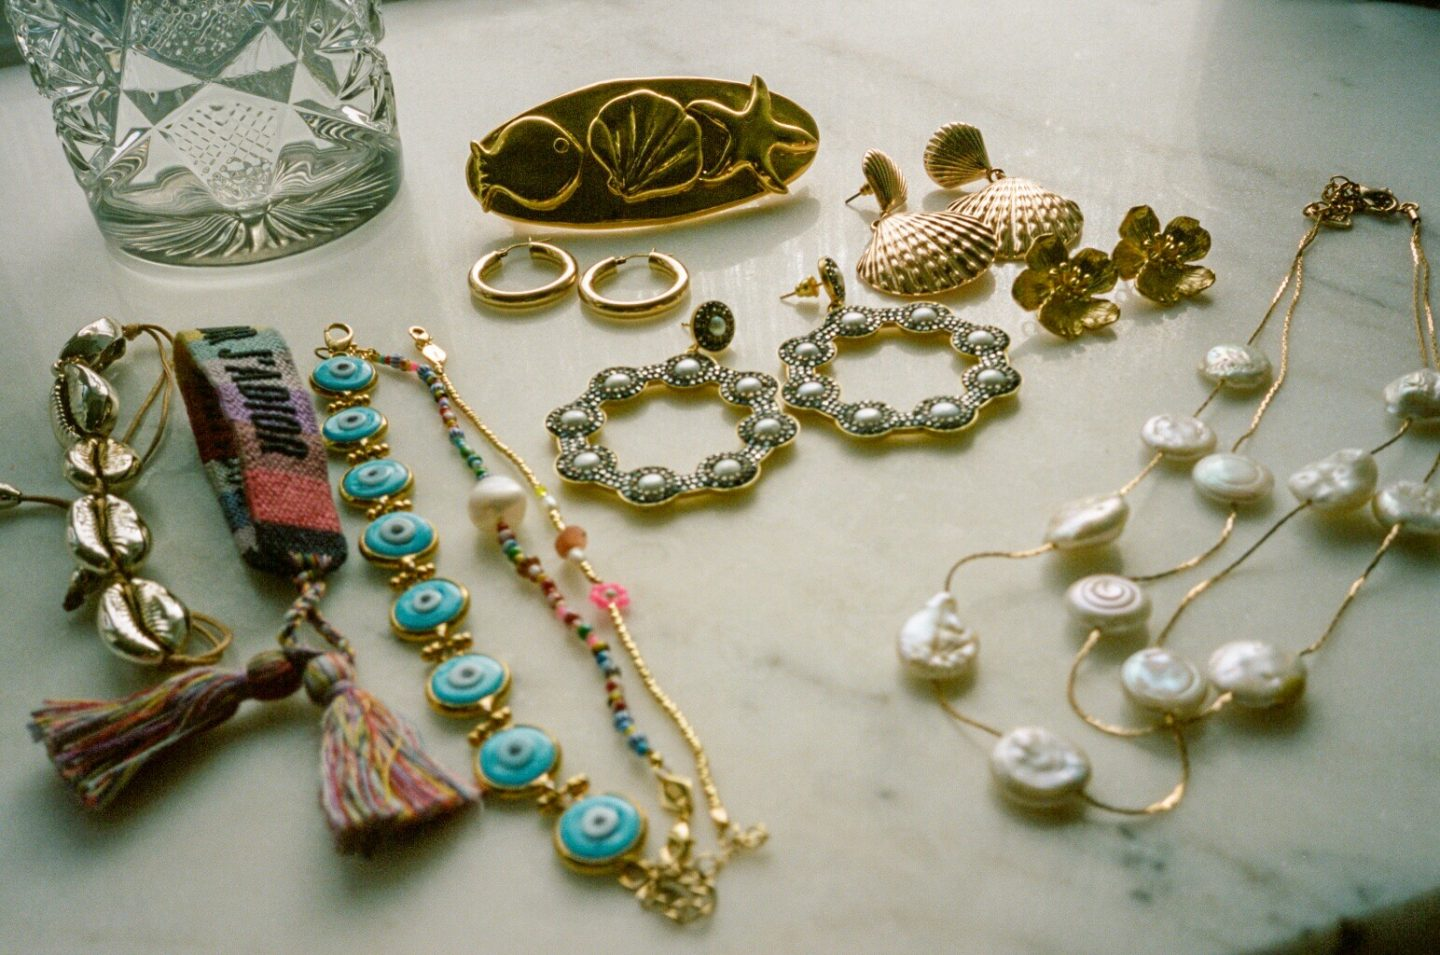 Must Have Summer Jewellery Pieces ft. Beads, Pearls & Shells